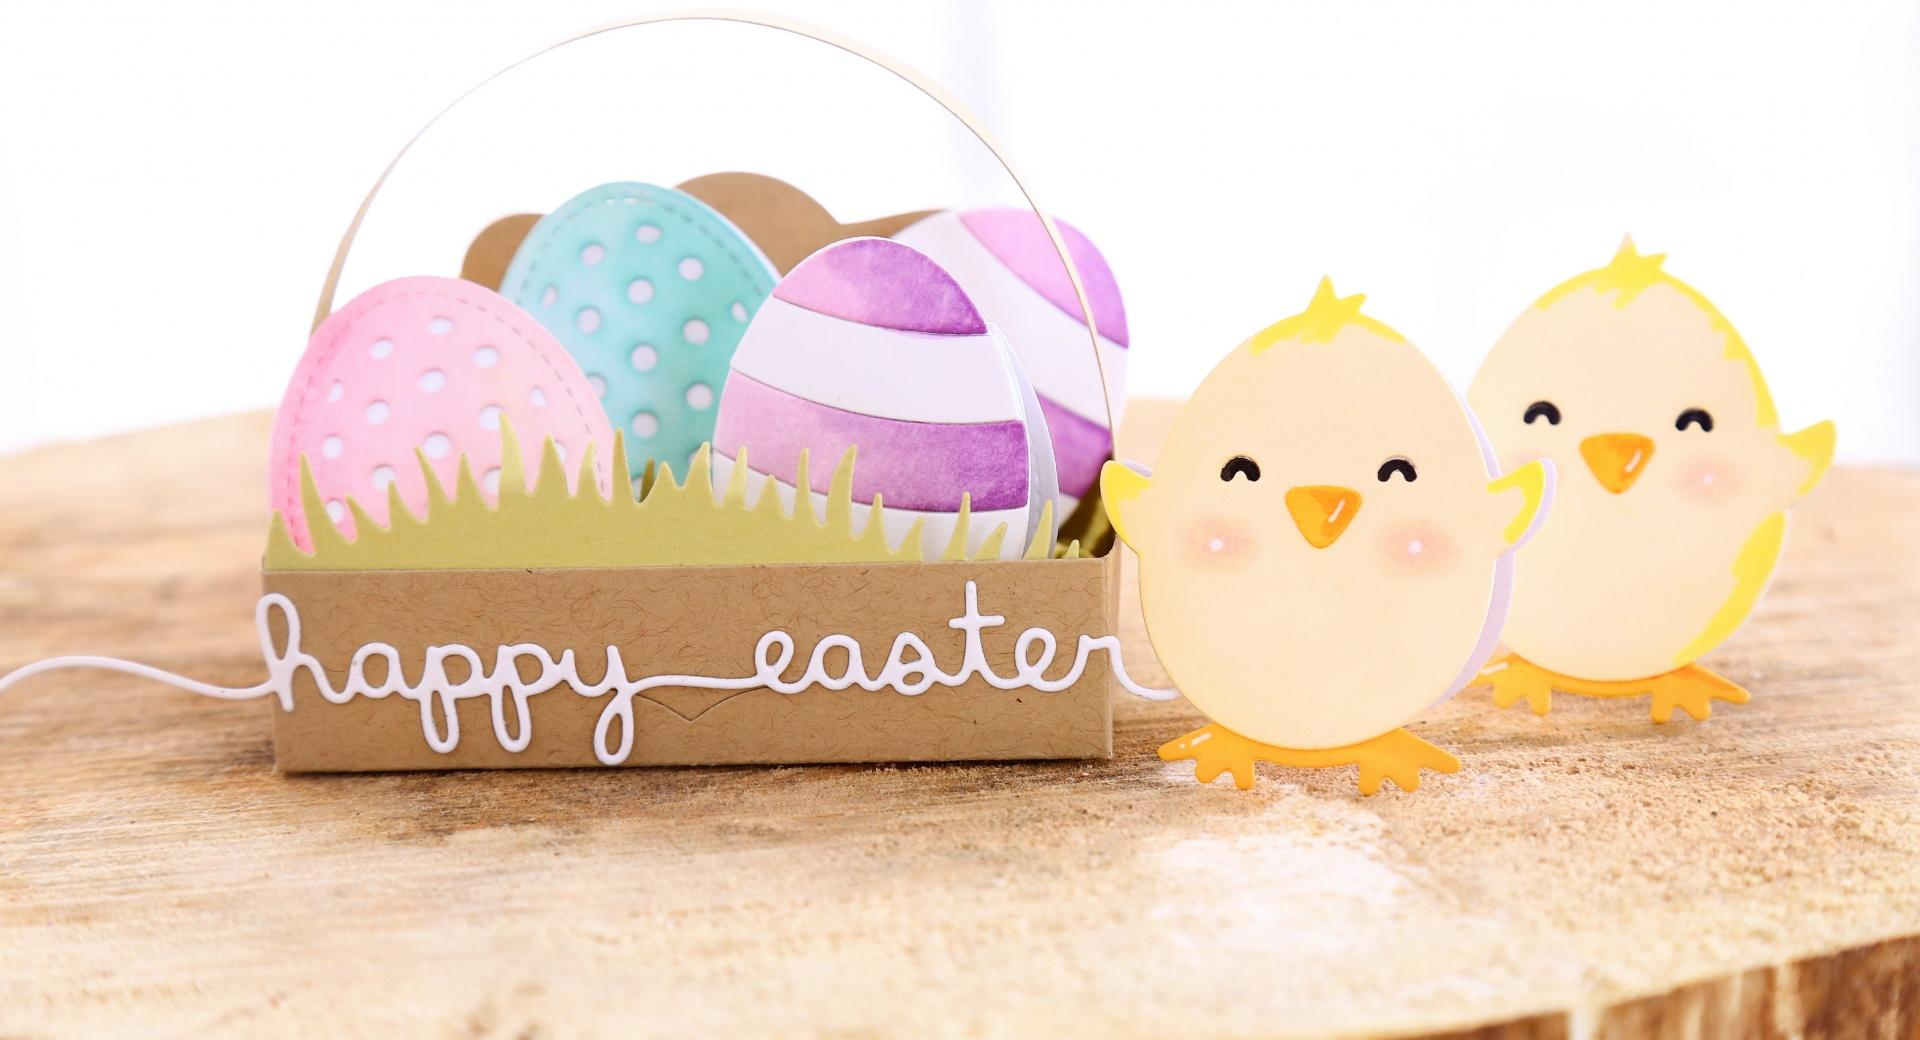 Easter Eggs in a Basket, Chicks, 2017 wallpapers HD quality